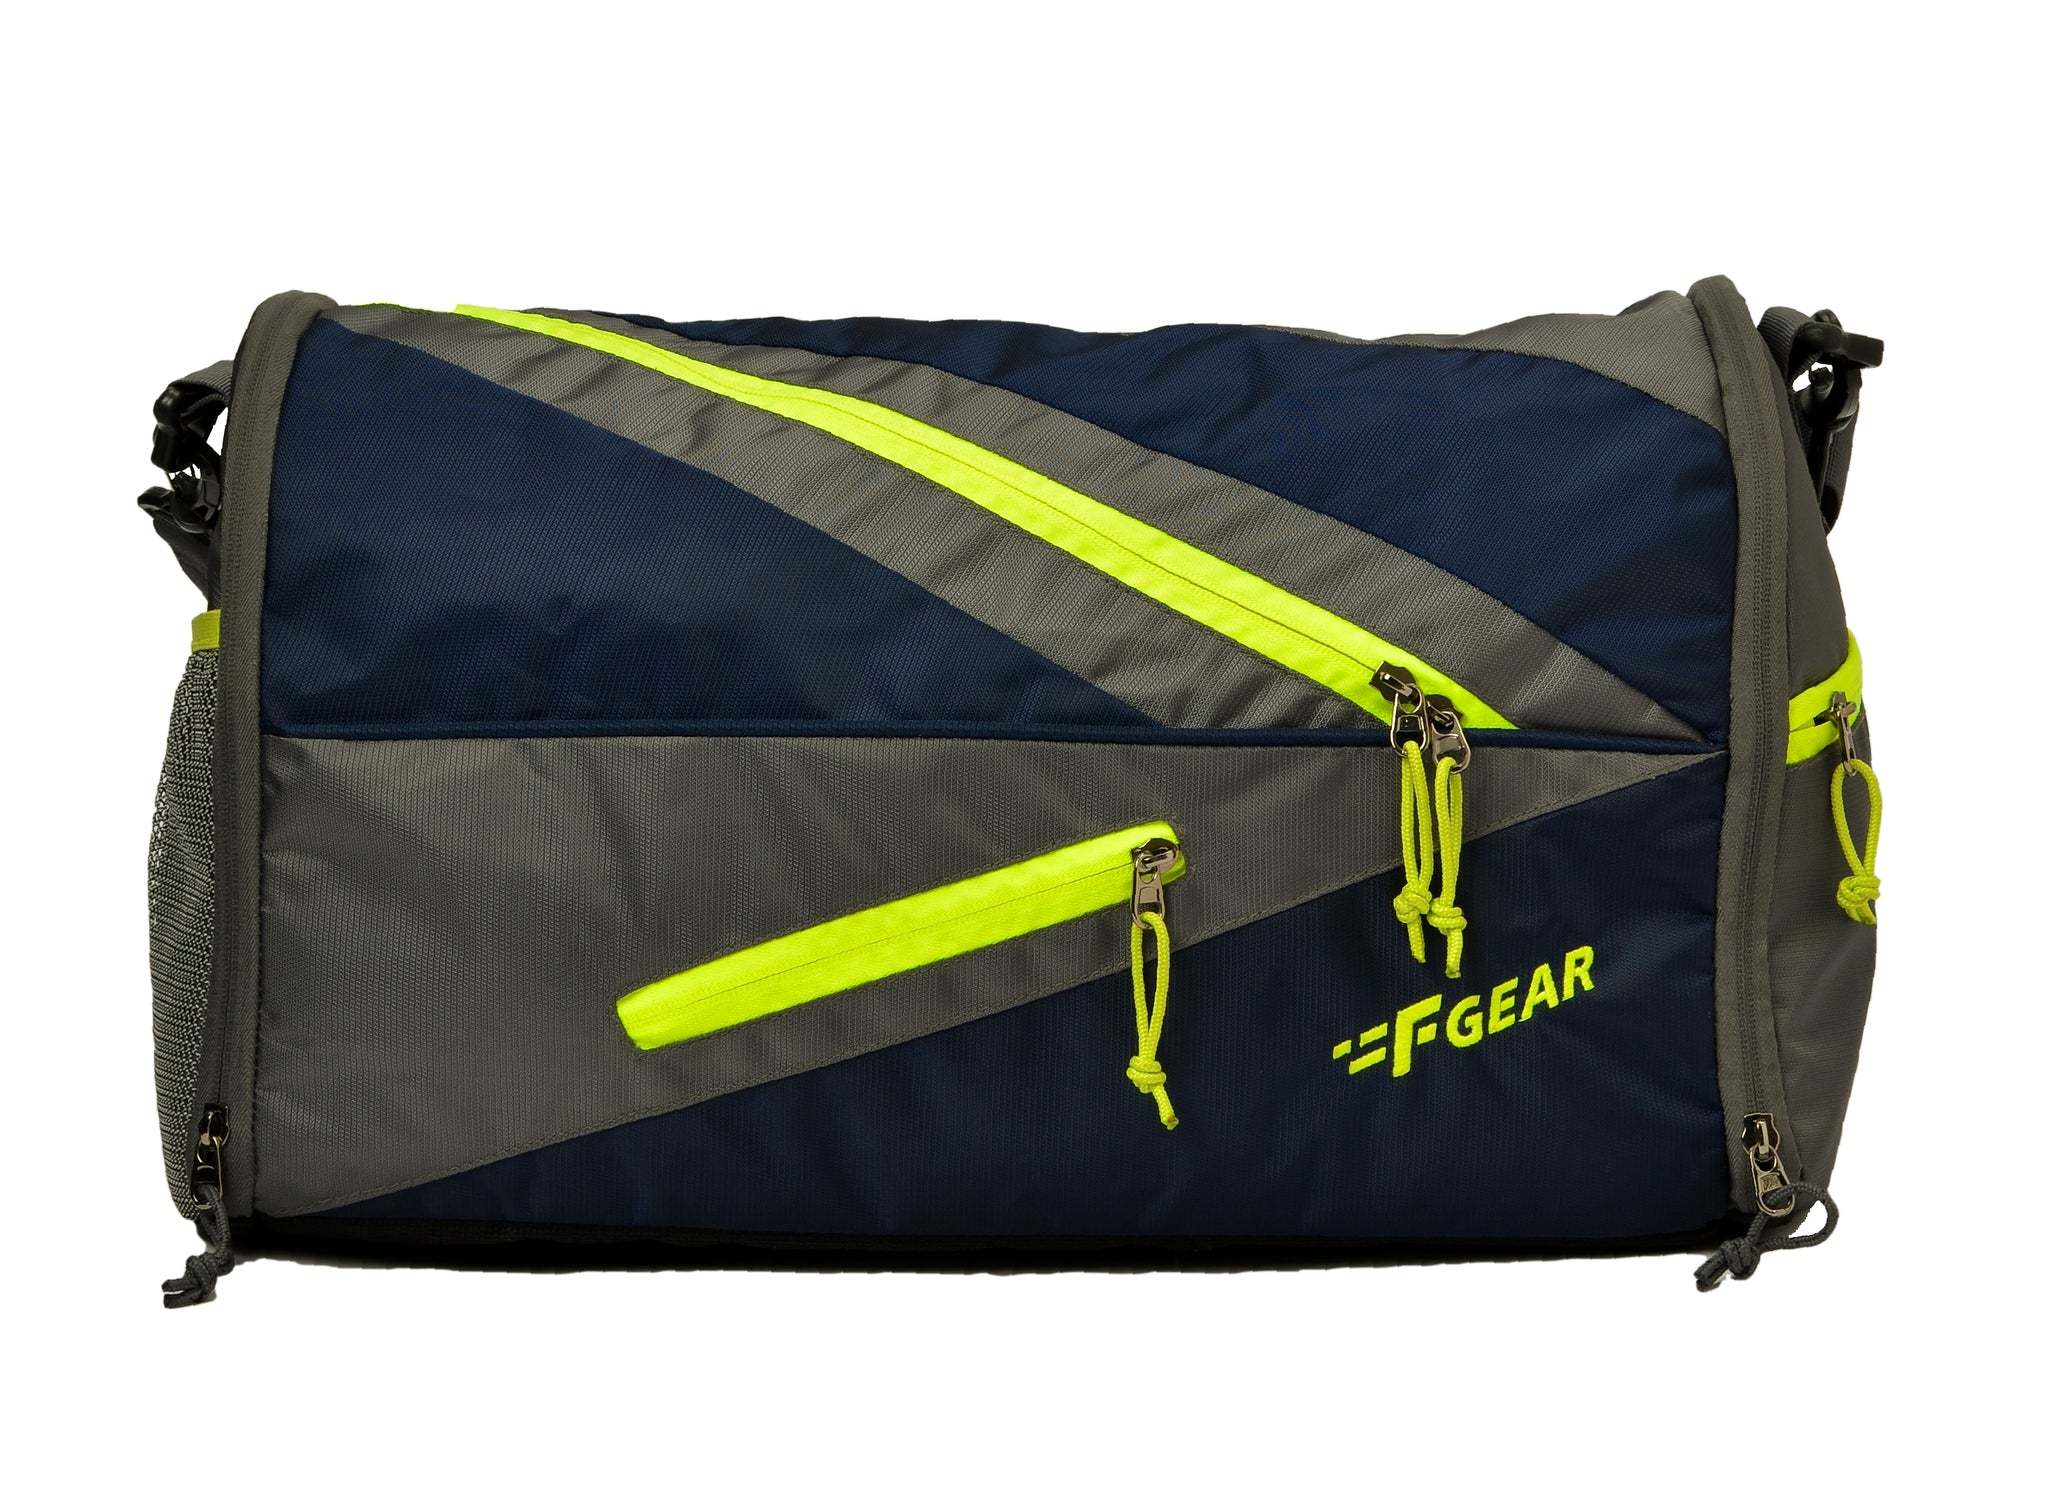 F Gear Surge 35 Liters Travel Duffle Bag (Navy Blue, Grey)